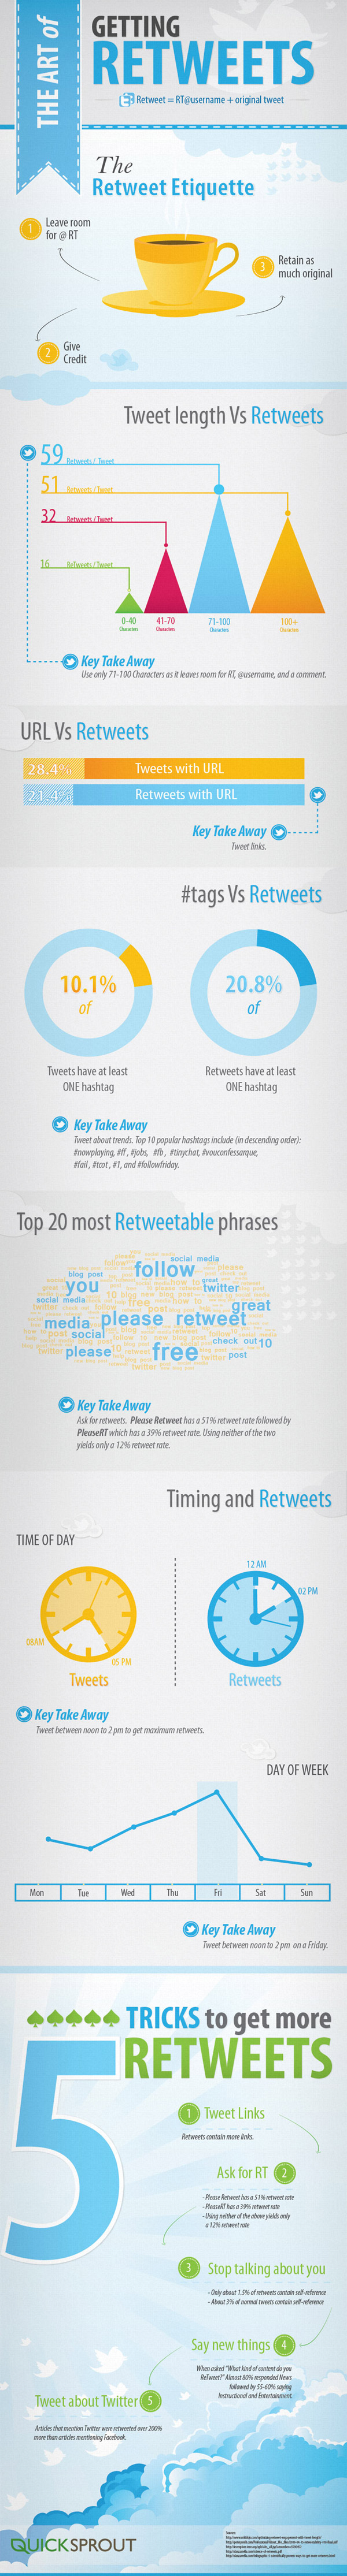 Get Retweets! Top 10 Tips to Rock the Retweet [infographic]